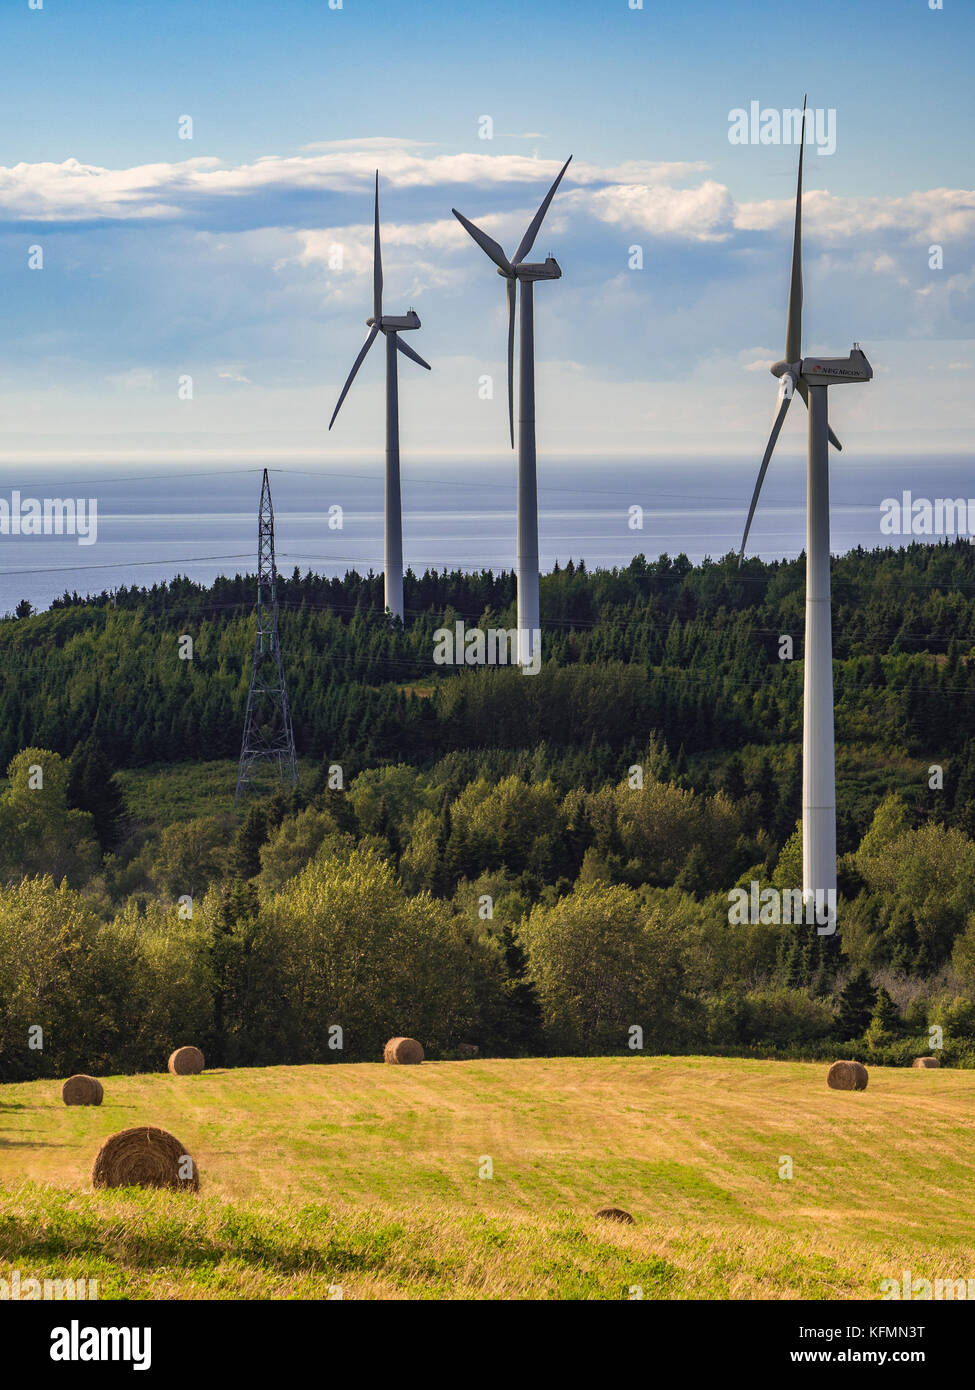 Wind farm, Le Nordais Windmill Park wind generation station, village of Cap-Chat, Gaspe Peninsula, Quebec, Canada - Stock Image